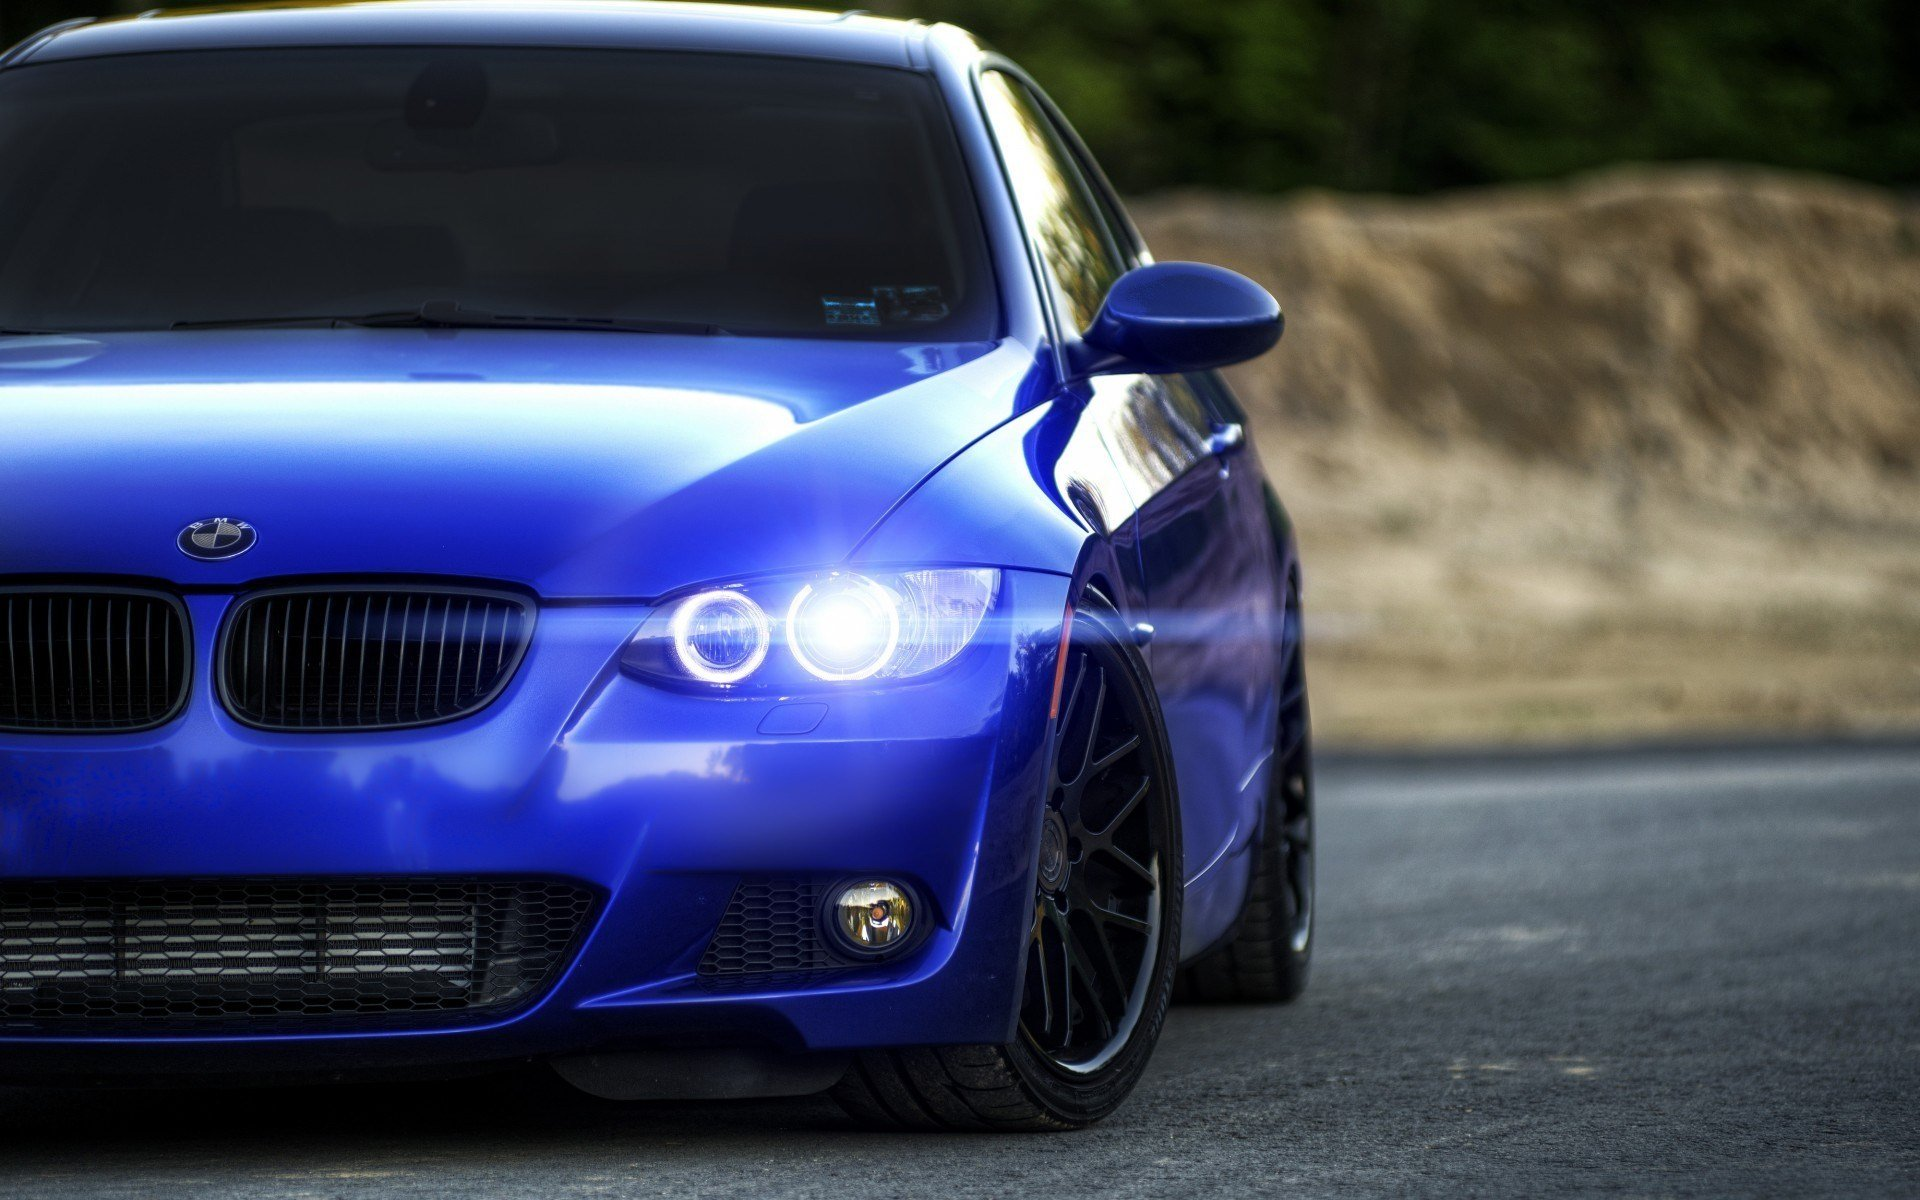 New Car Bmw Rims Blurred Blue Cars Wallpapers Hd Desktop On This Month